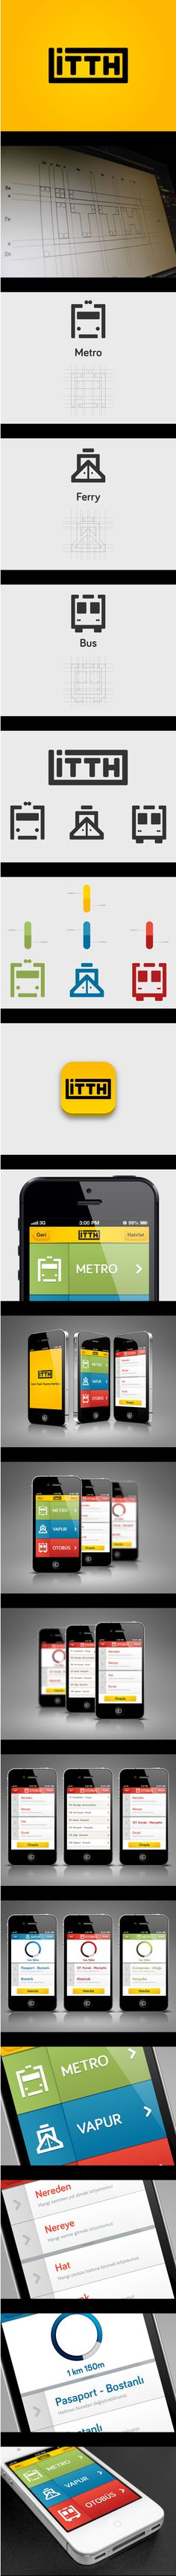 "Public Transportation iPhone App on Behance *** ""İTTH"" stands for ""İzmir Toplu Taşıma Haritası"" (Izmir Public Transportation Map)."